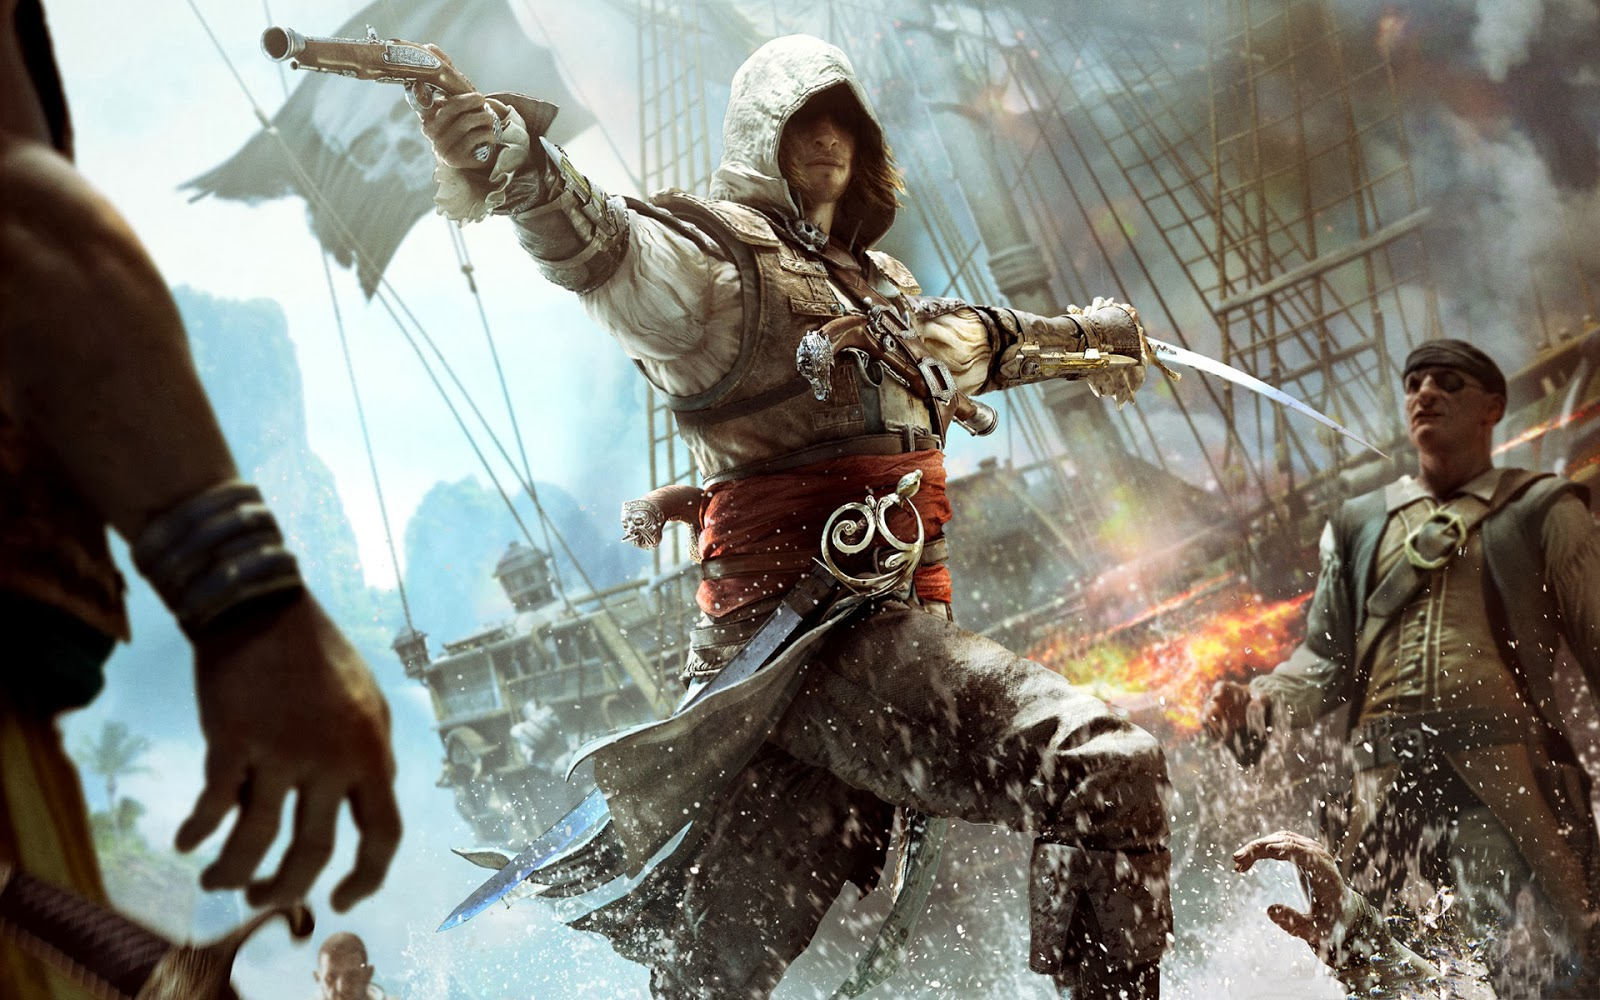 Programa 7x16 (31-01-2014) Assassin's Creed IV Black Flag Assassins-creed-iv-black-flag